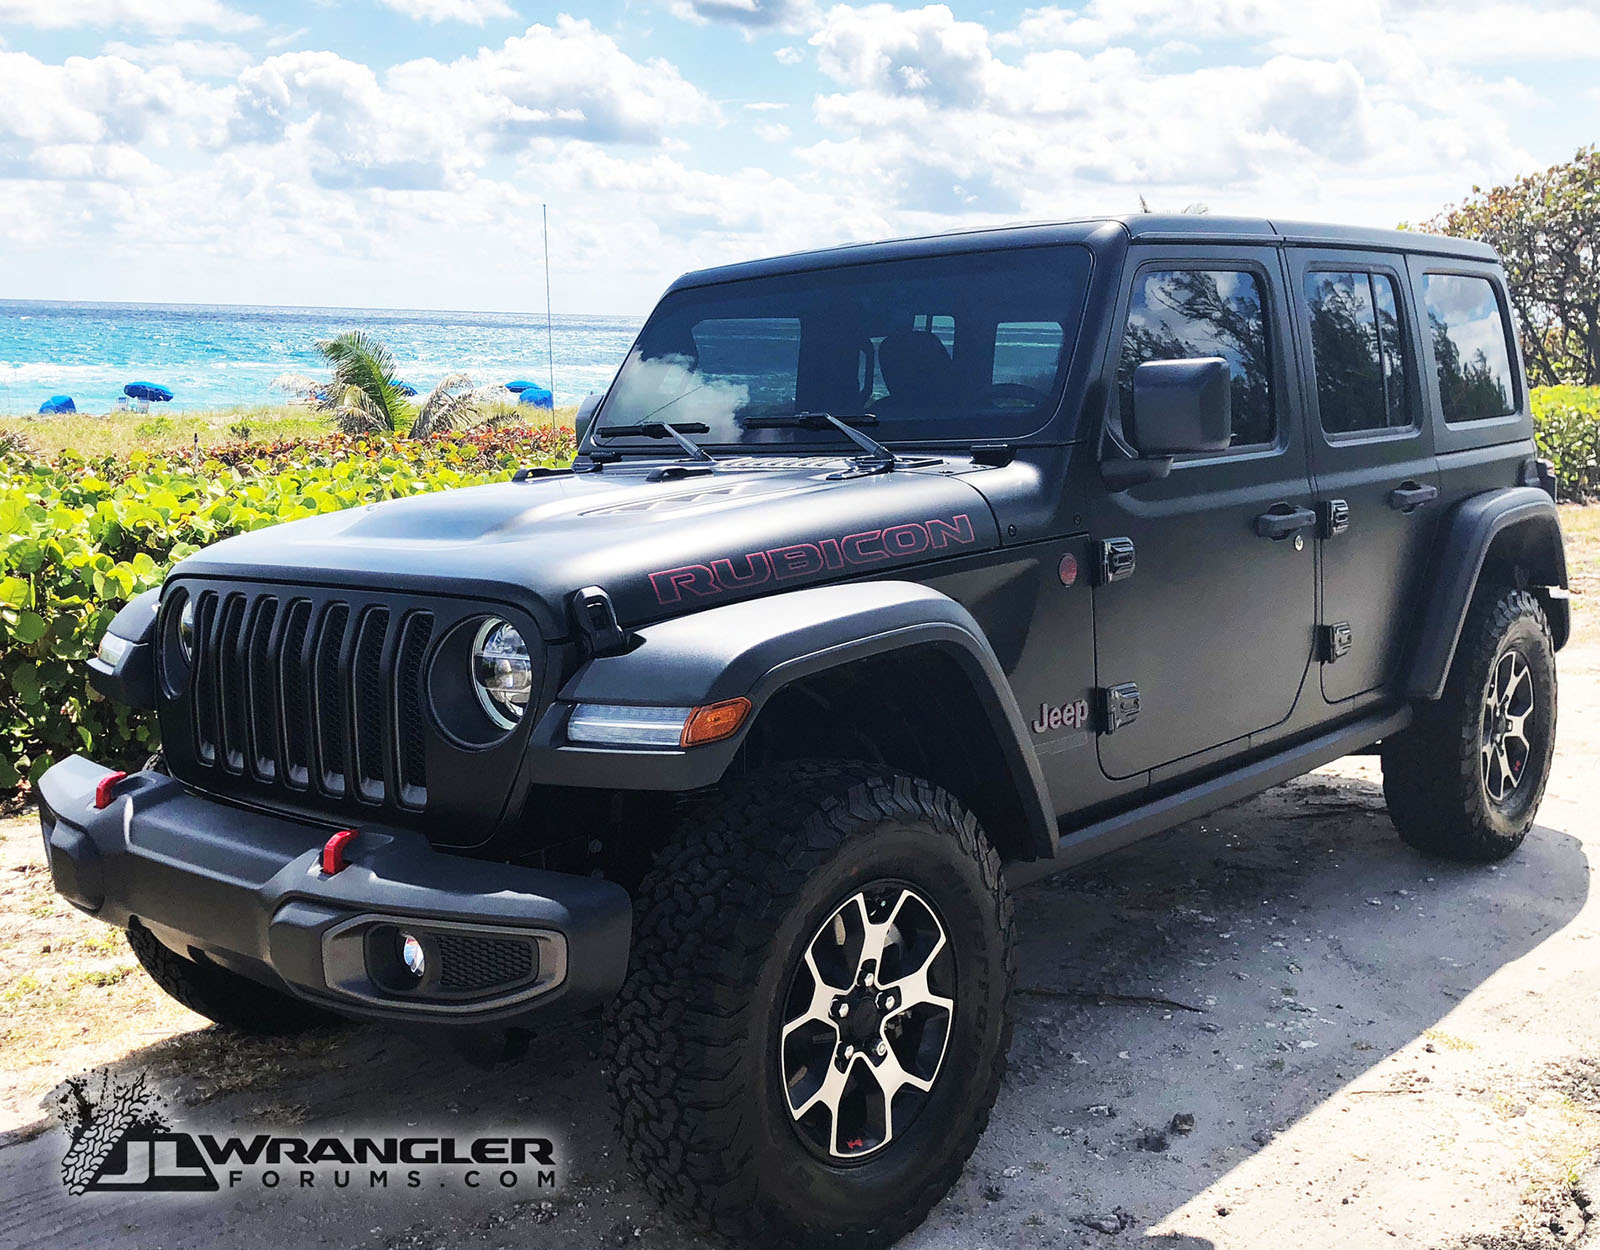 Black Jeep Wrangler Jl Wrapped In Xpel Stealth Protection Film